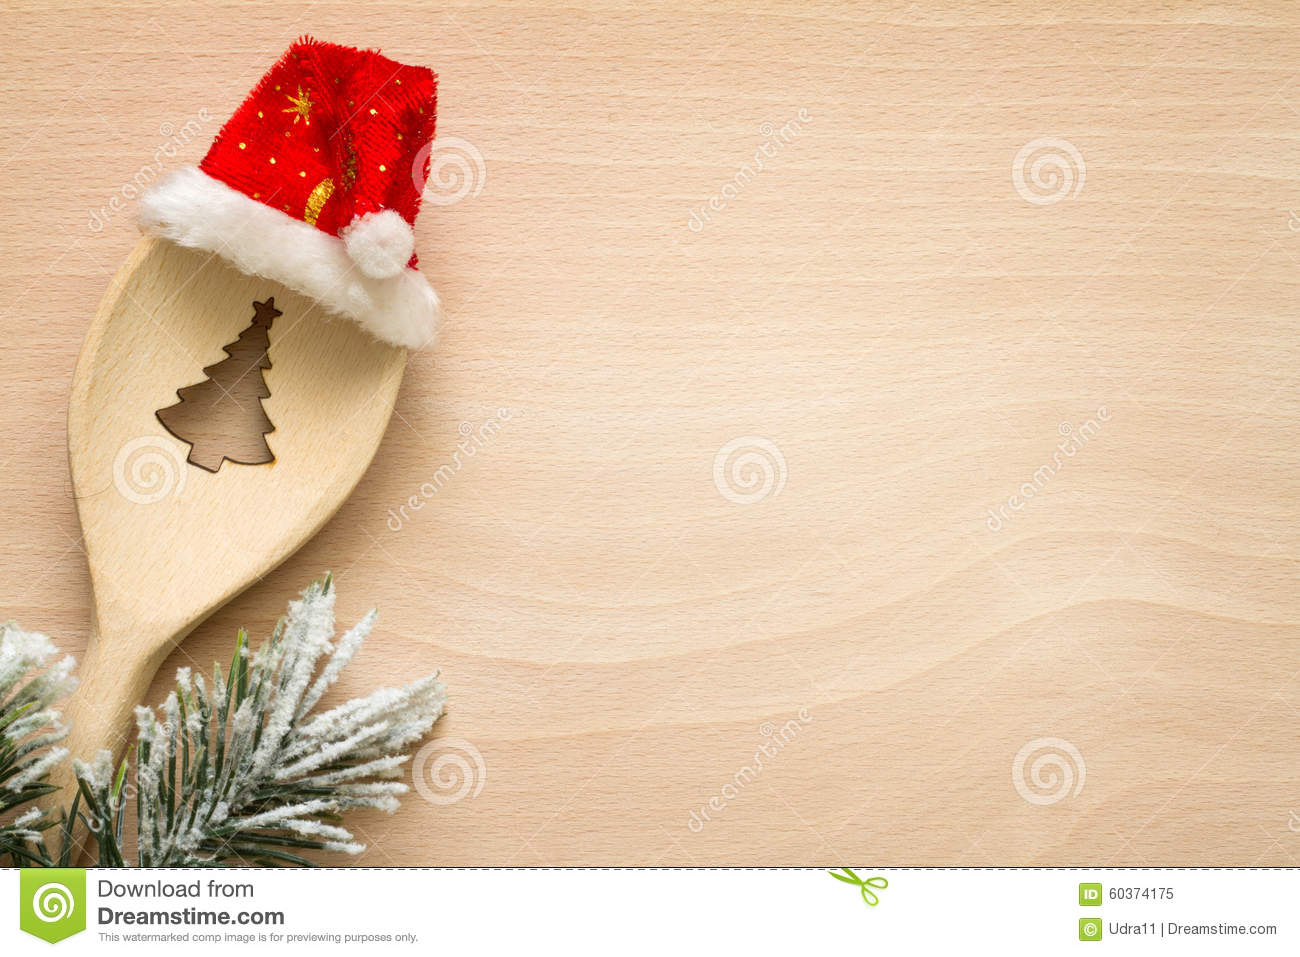 Christmas Tree In Spoon Abstract Food Background Stock